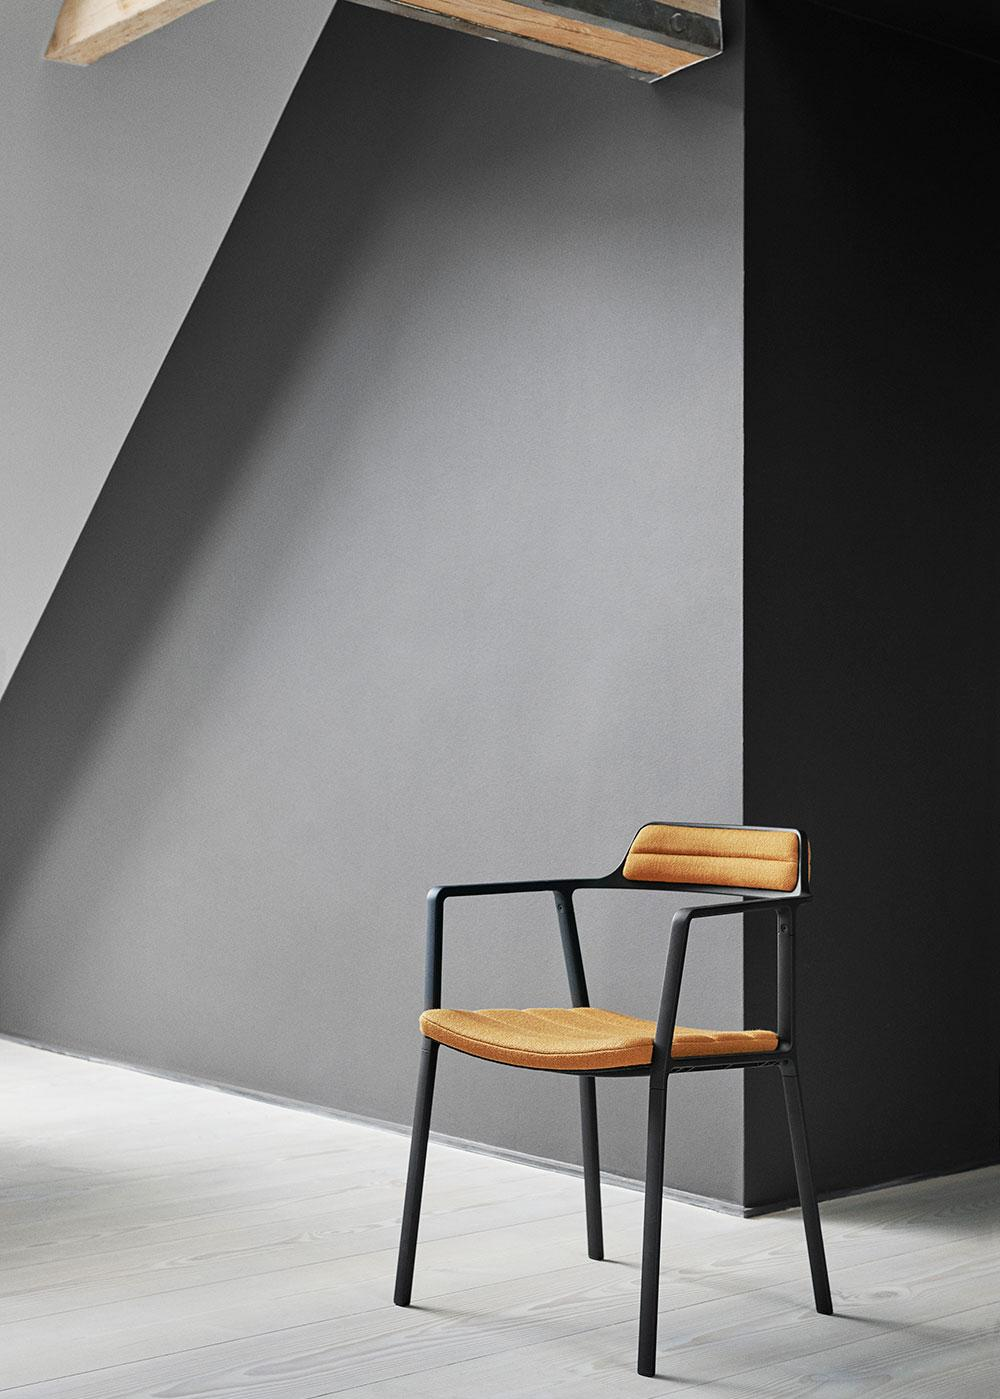 Vipp451 chair